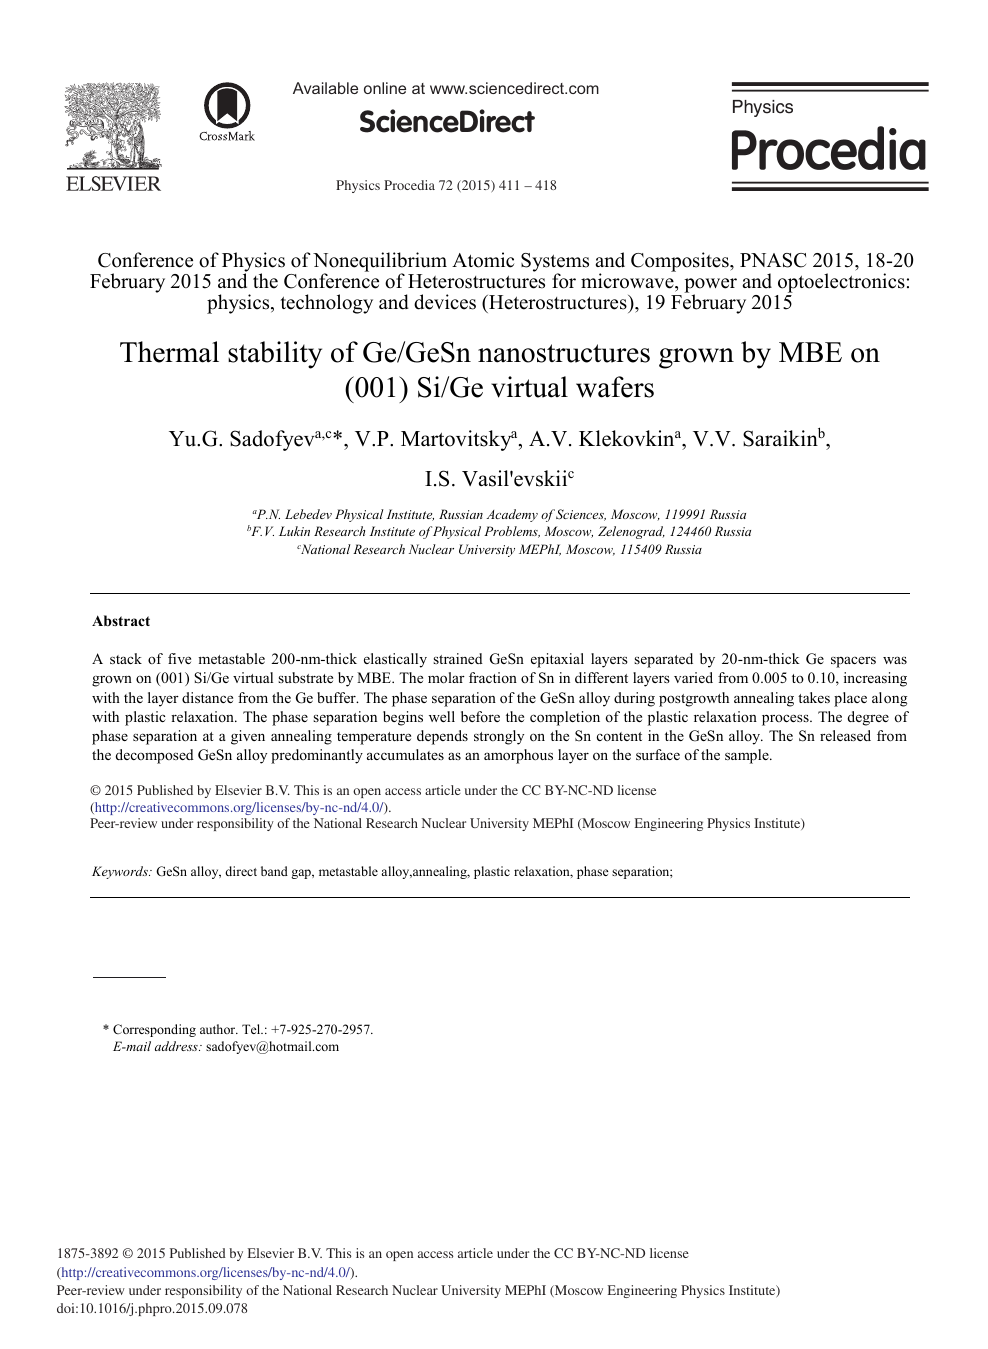 Thermal Stability of Ge/GeSn Nanostructures Grown by MBE on (001) Si